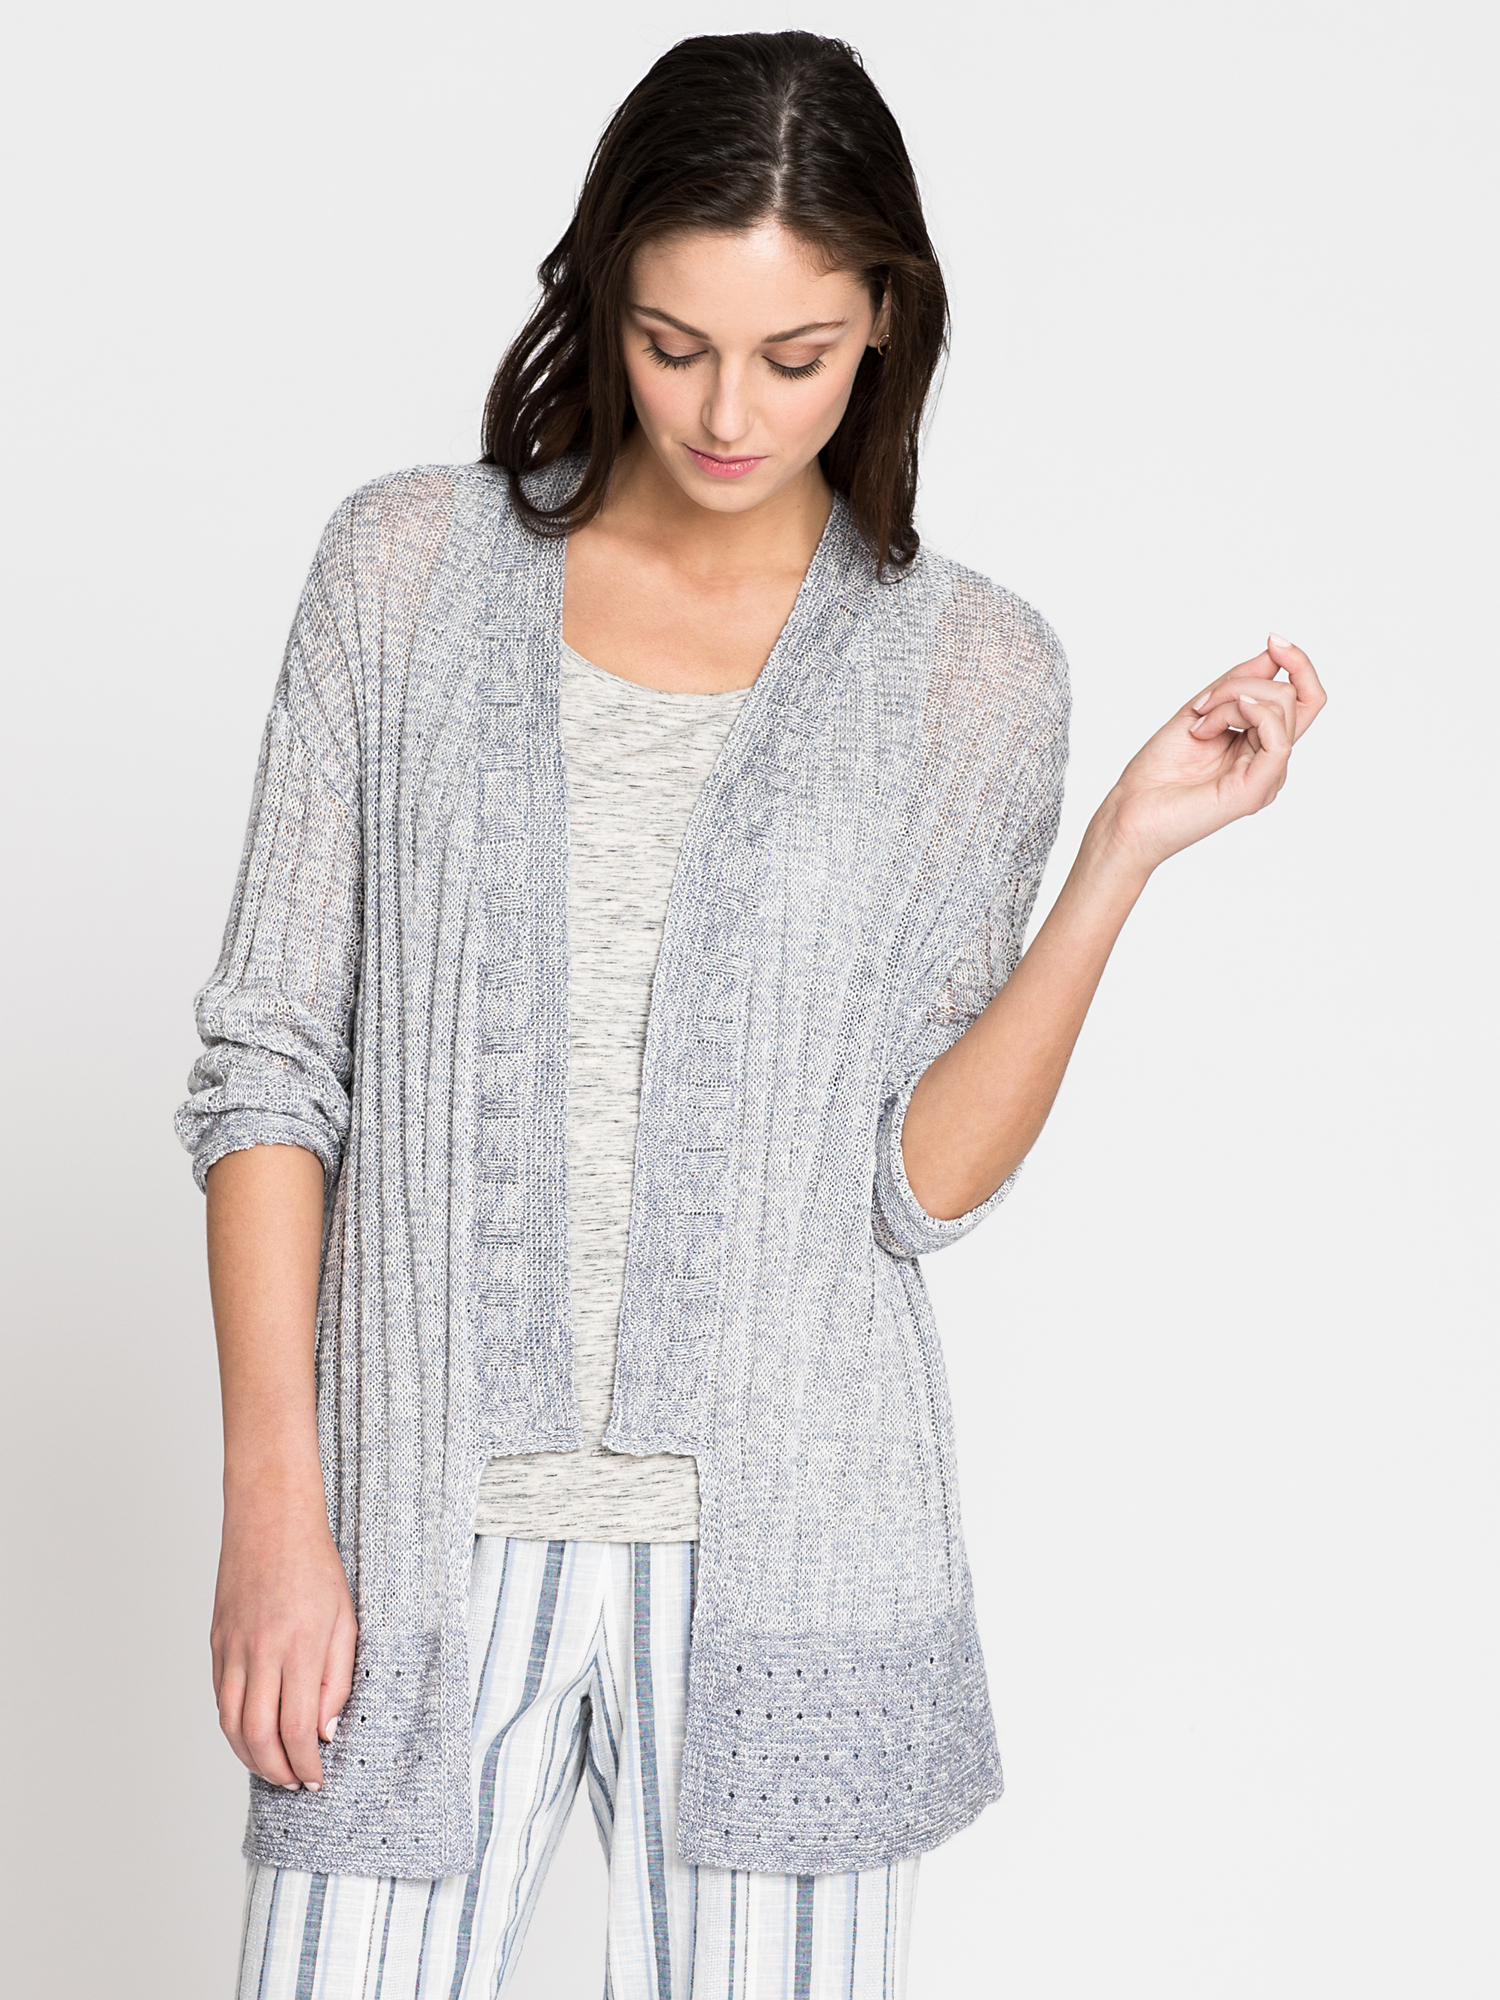 Changing Tides Cardigan